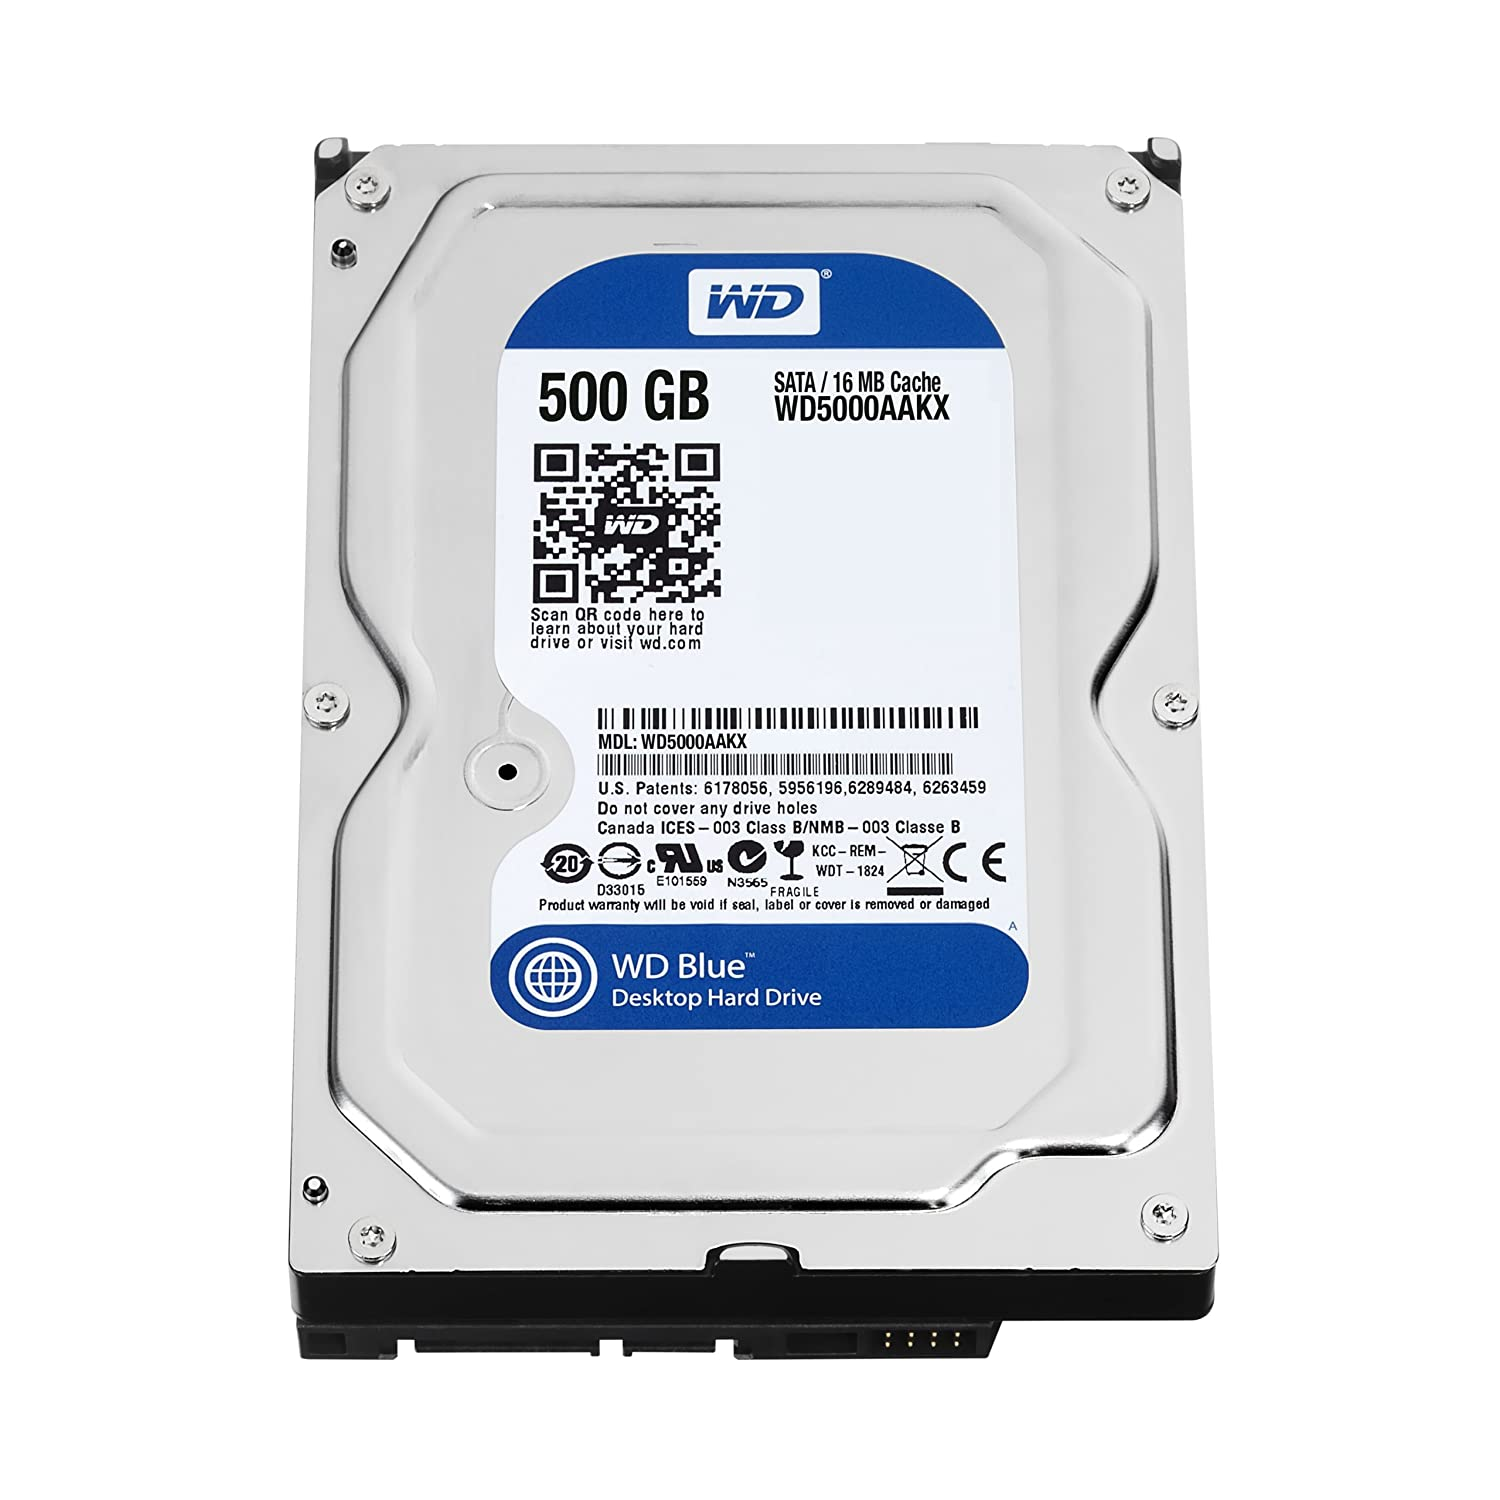 WD Blue 500GBDesktopHard Disk Drive - 7200 RPM SATA 6 Gb/s 16MB Cache 3.5 Inch- WD5000AAKX